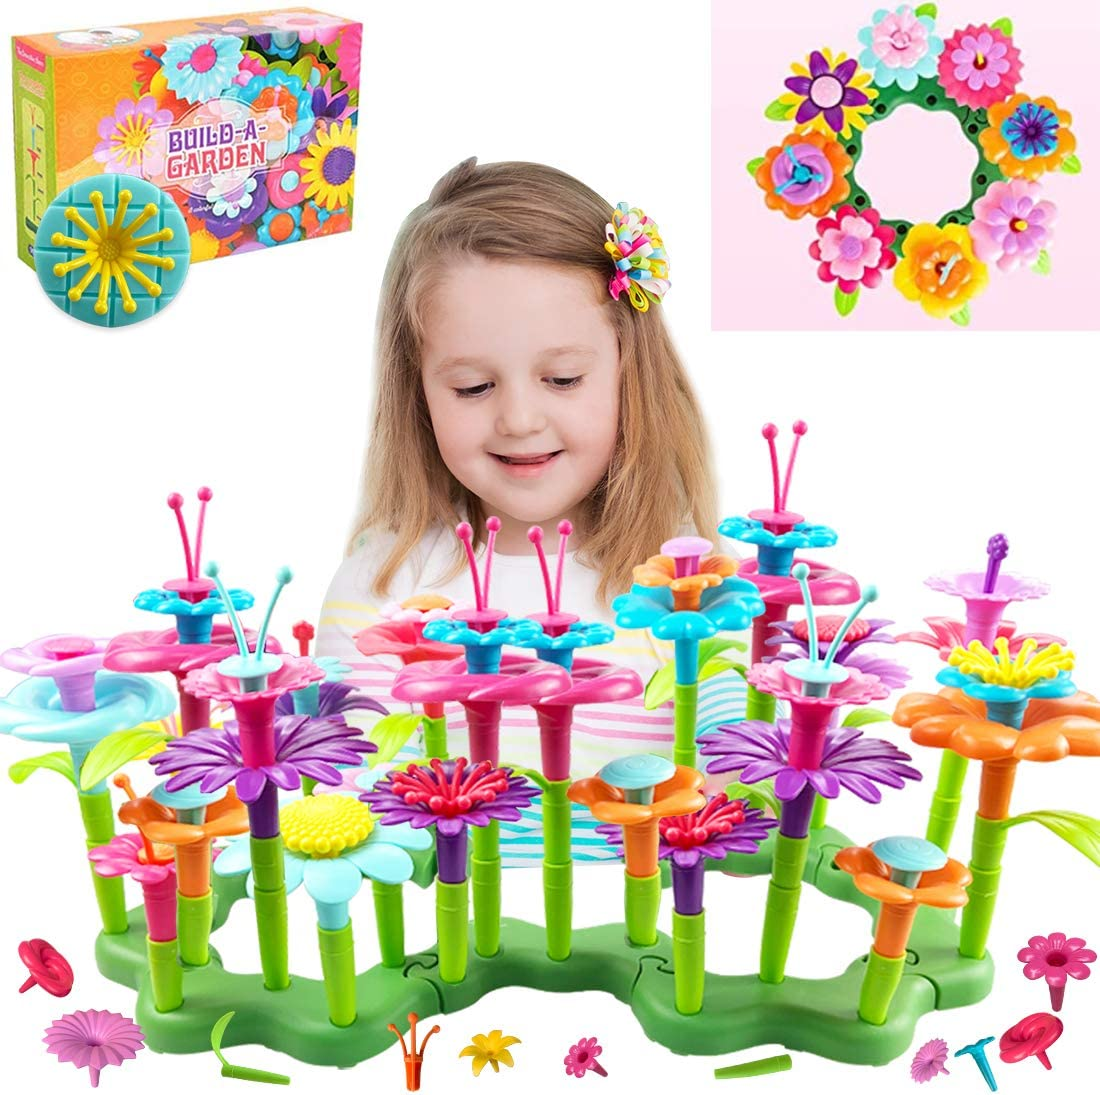 BATURU Flower Garden Building Toys 109pcs with Bag, STEM Educational Flower Toys and Girls Birthday Christmas Garden Building Gift for 3, 4, 5, 6 Year Old Toddlers and Kids